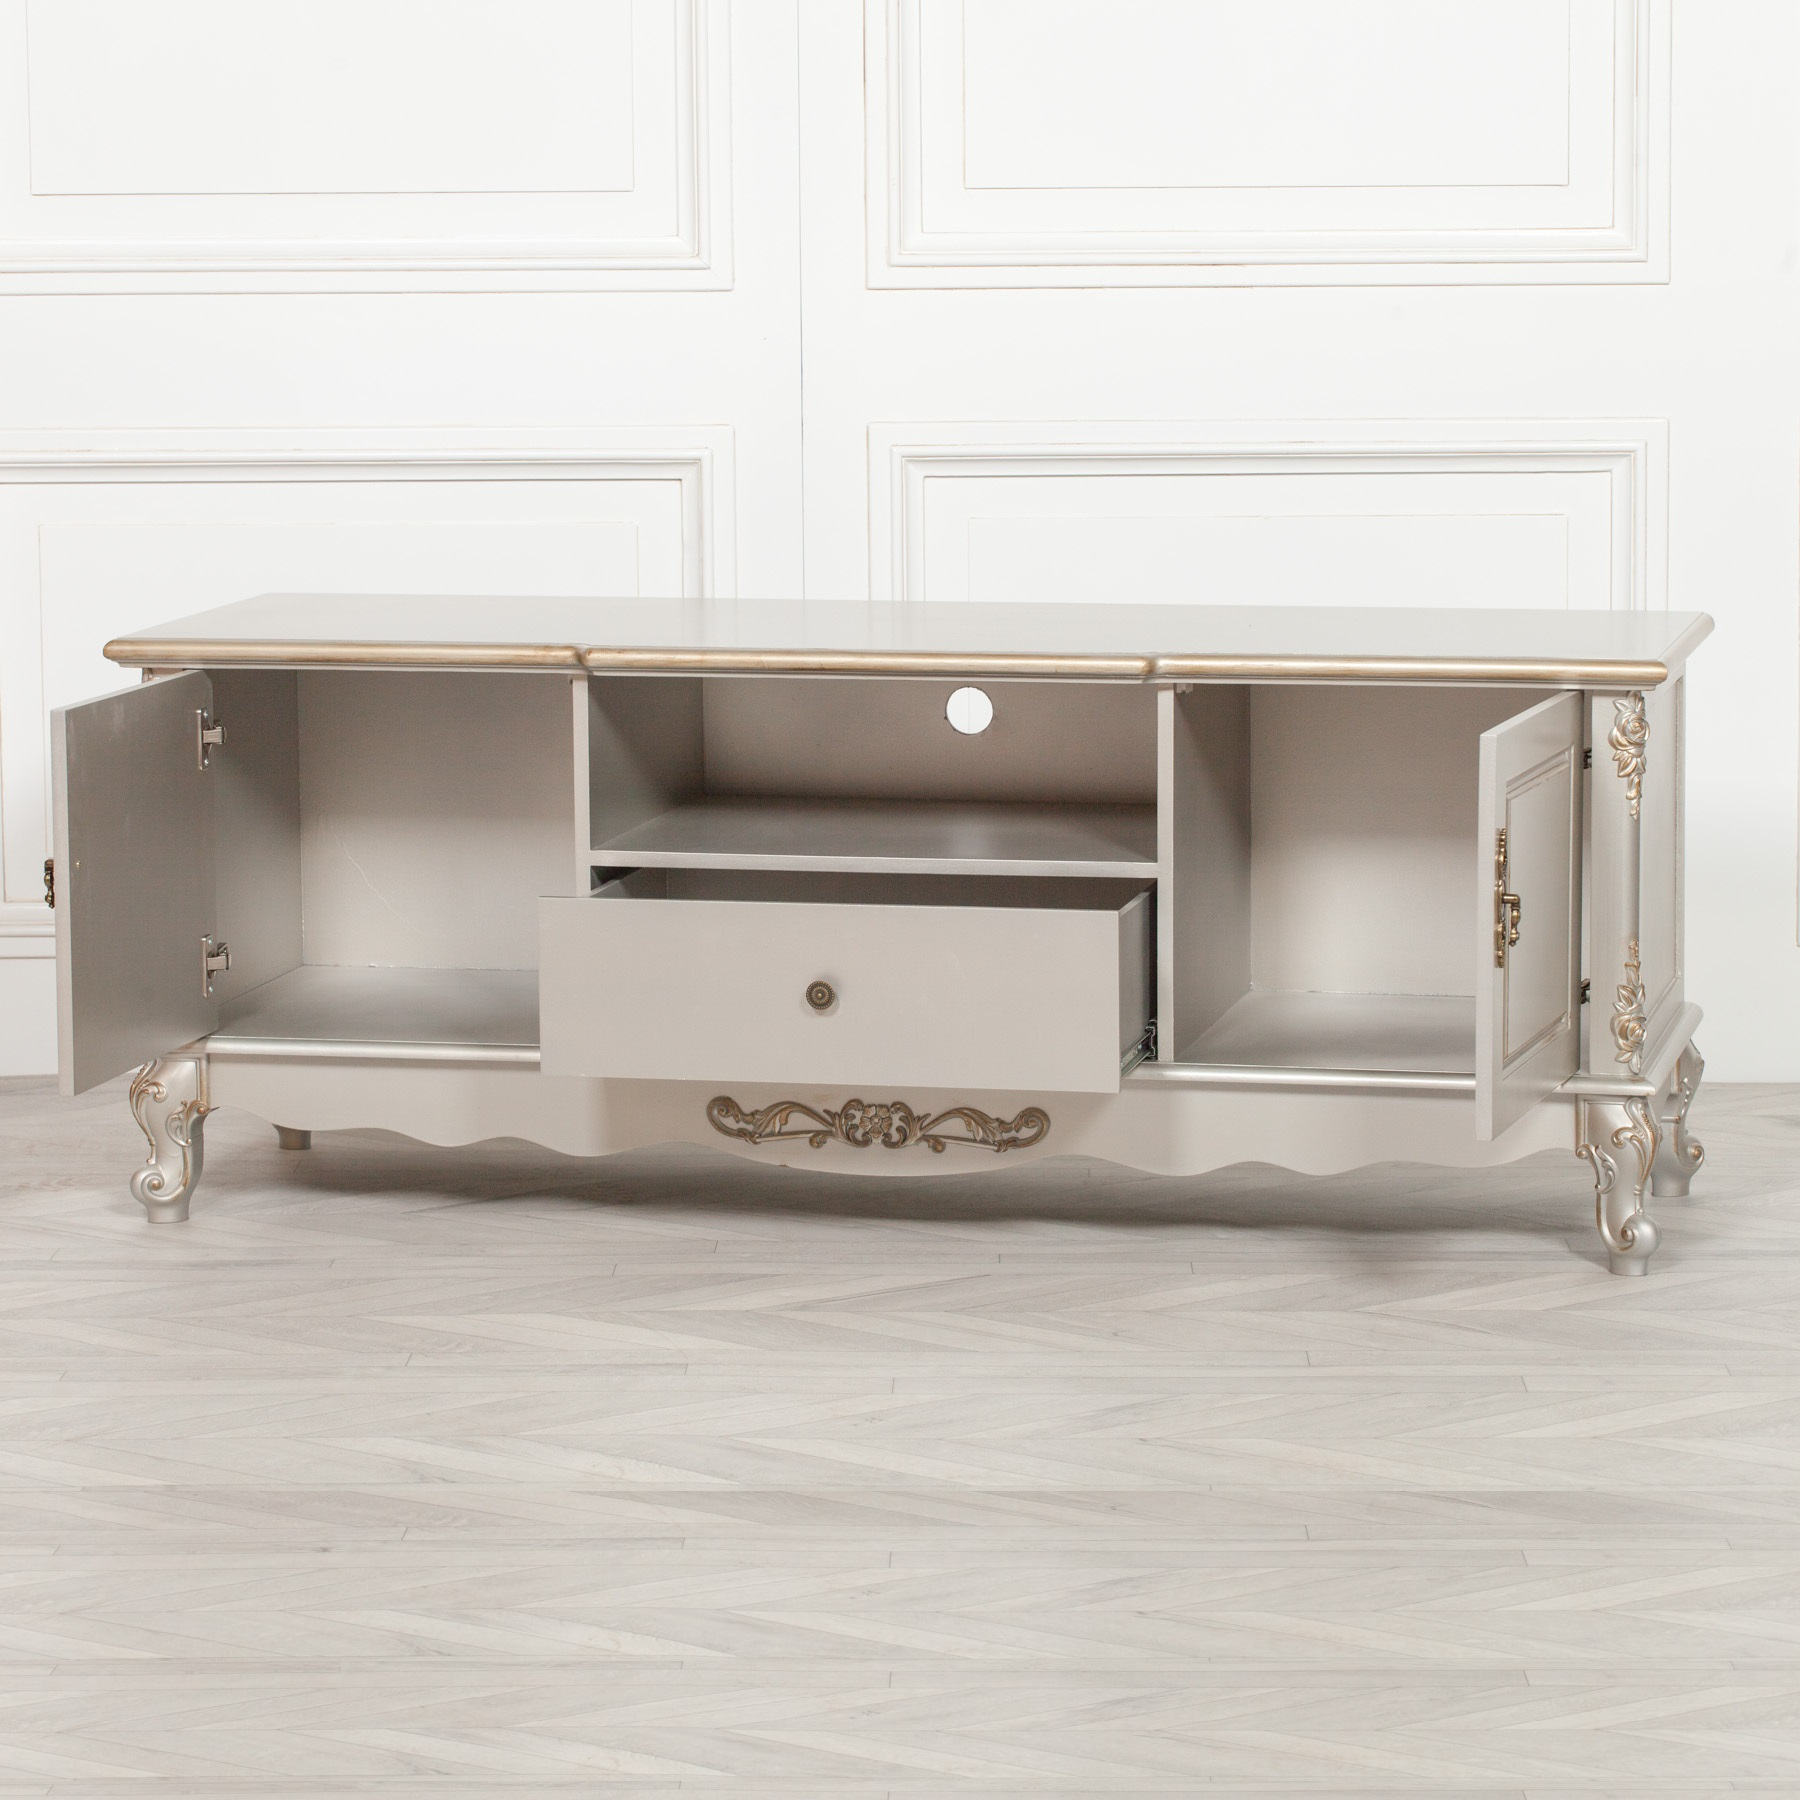 French Antique Silver Large Cabinet TV Unit